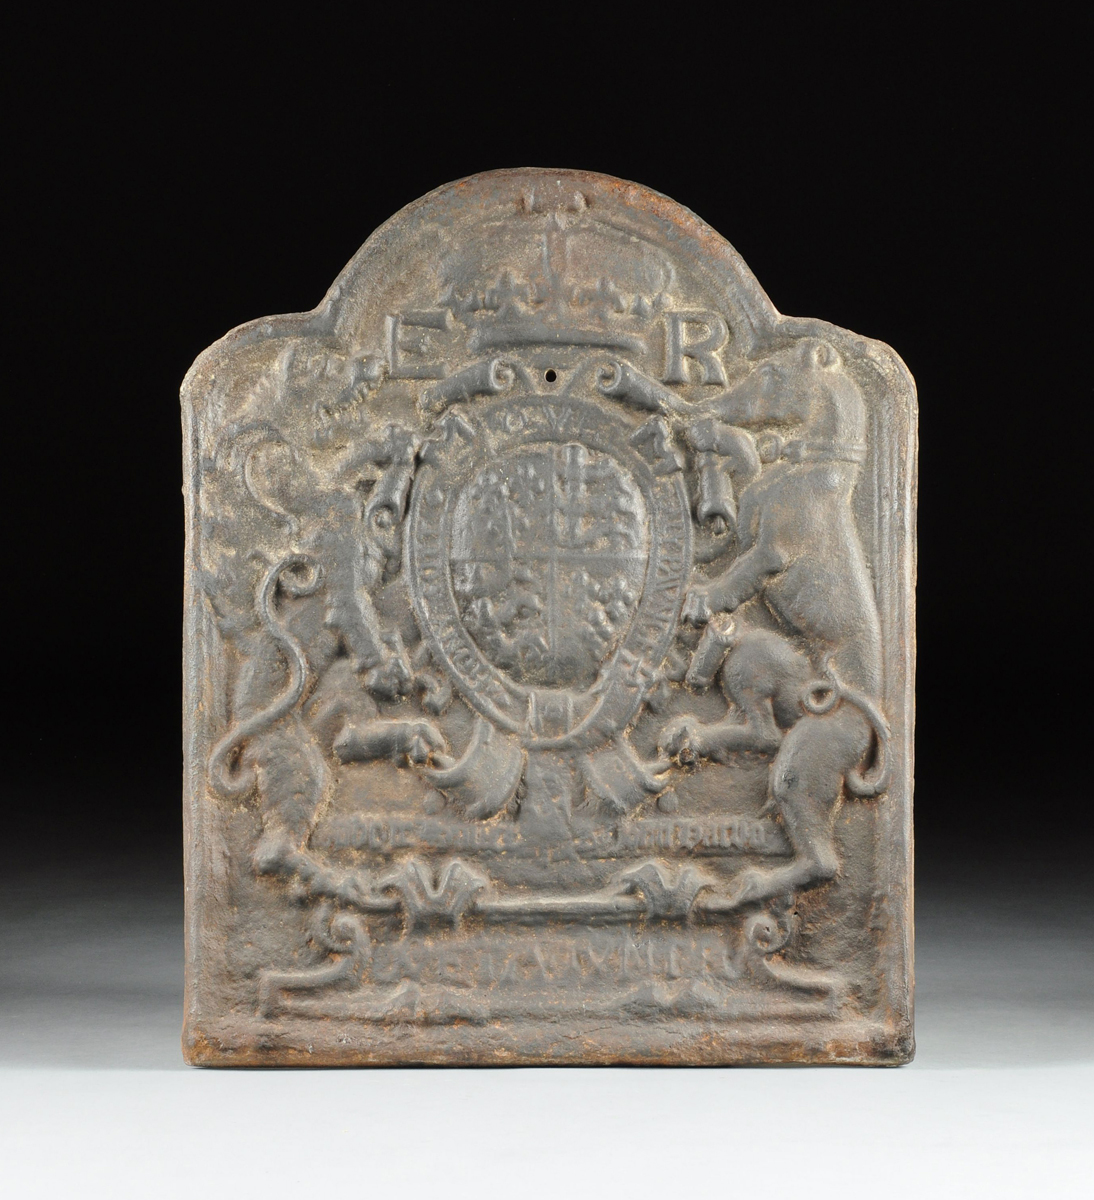 AN ENGLISH ELIZABETHAN STYLE ARMORIAL CAST IRON FIREPLACE BACK ...